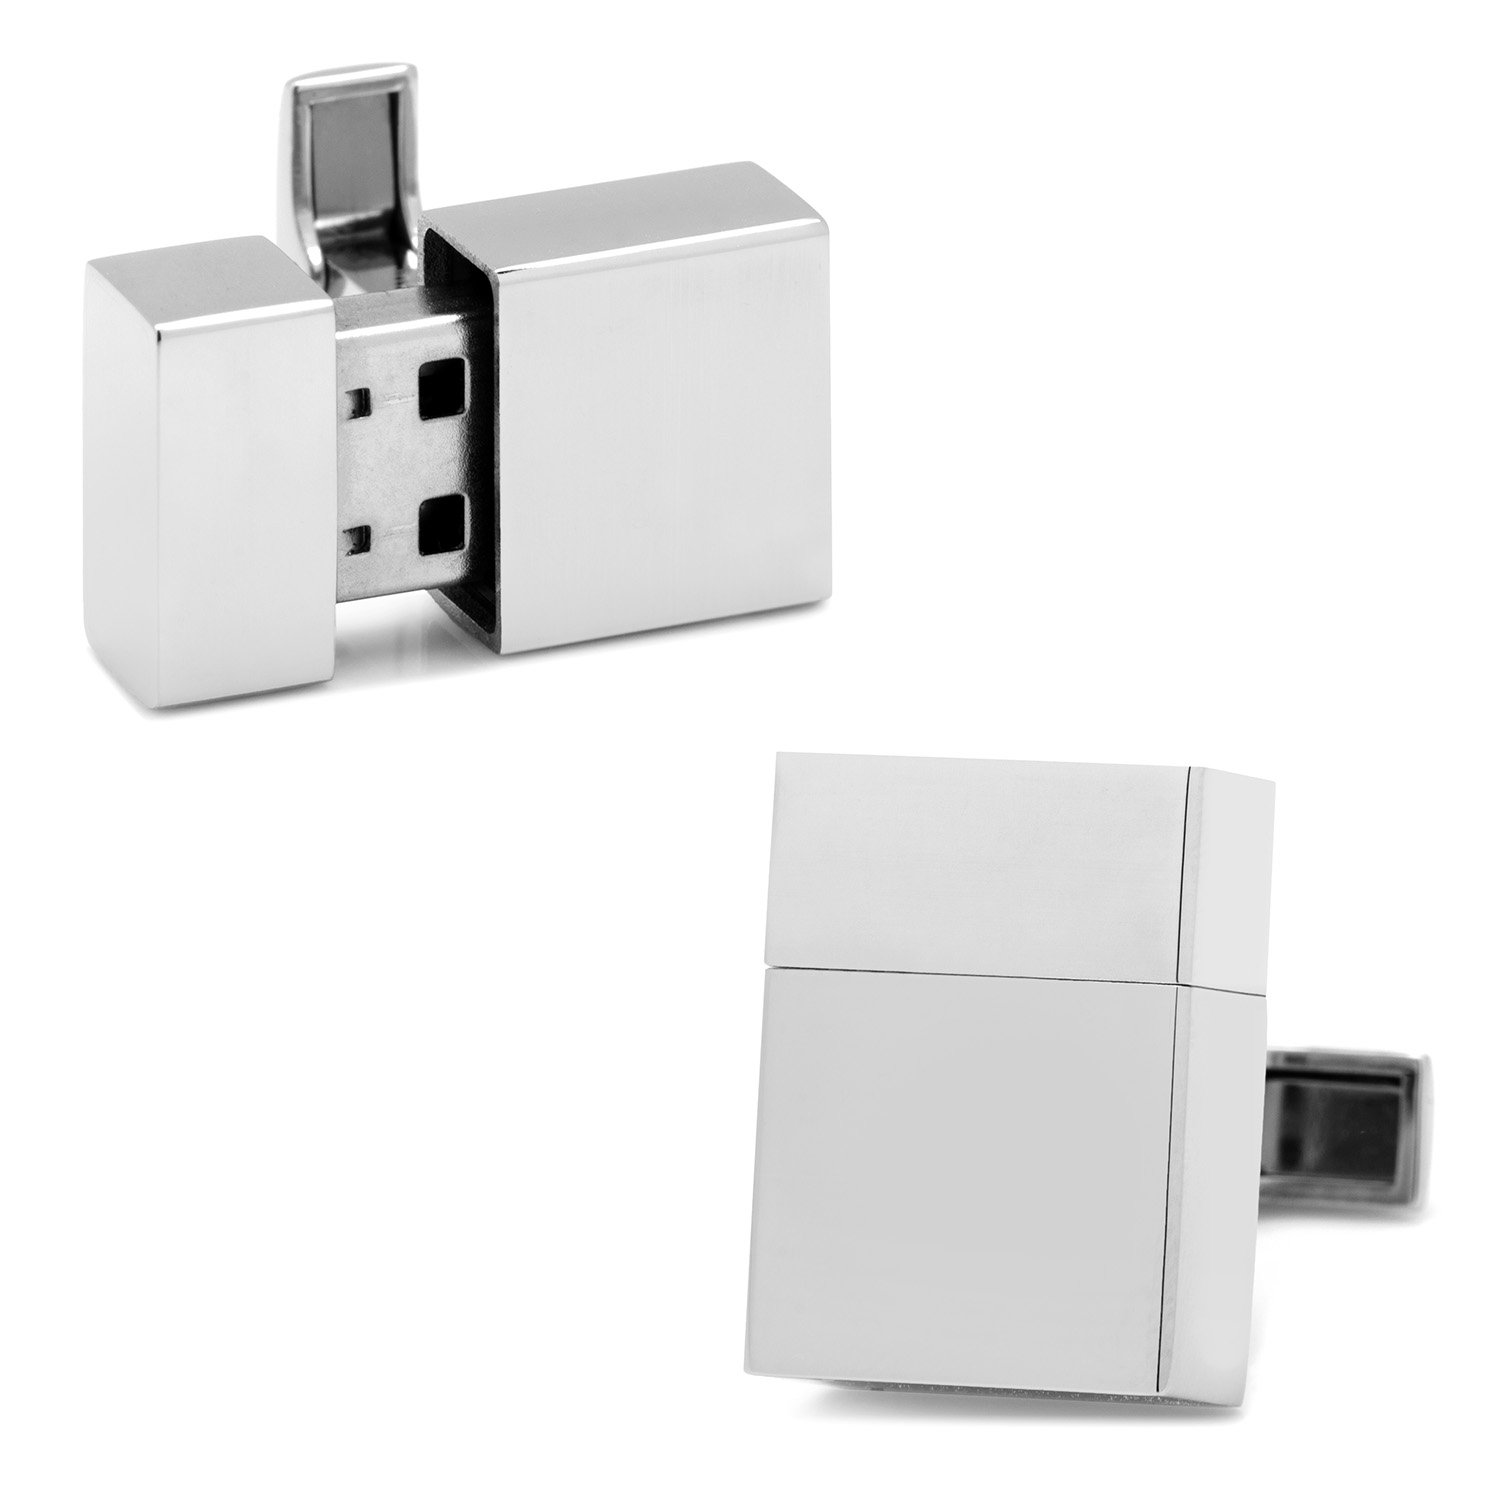 Ox and Bull Trading Co. Stainless Steel 16GB USB Flash Drive Cufflinks by Ox and Bull